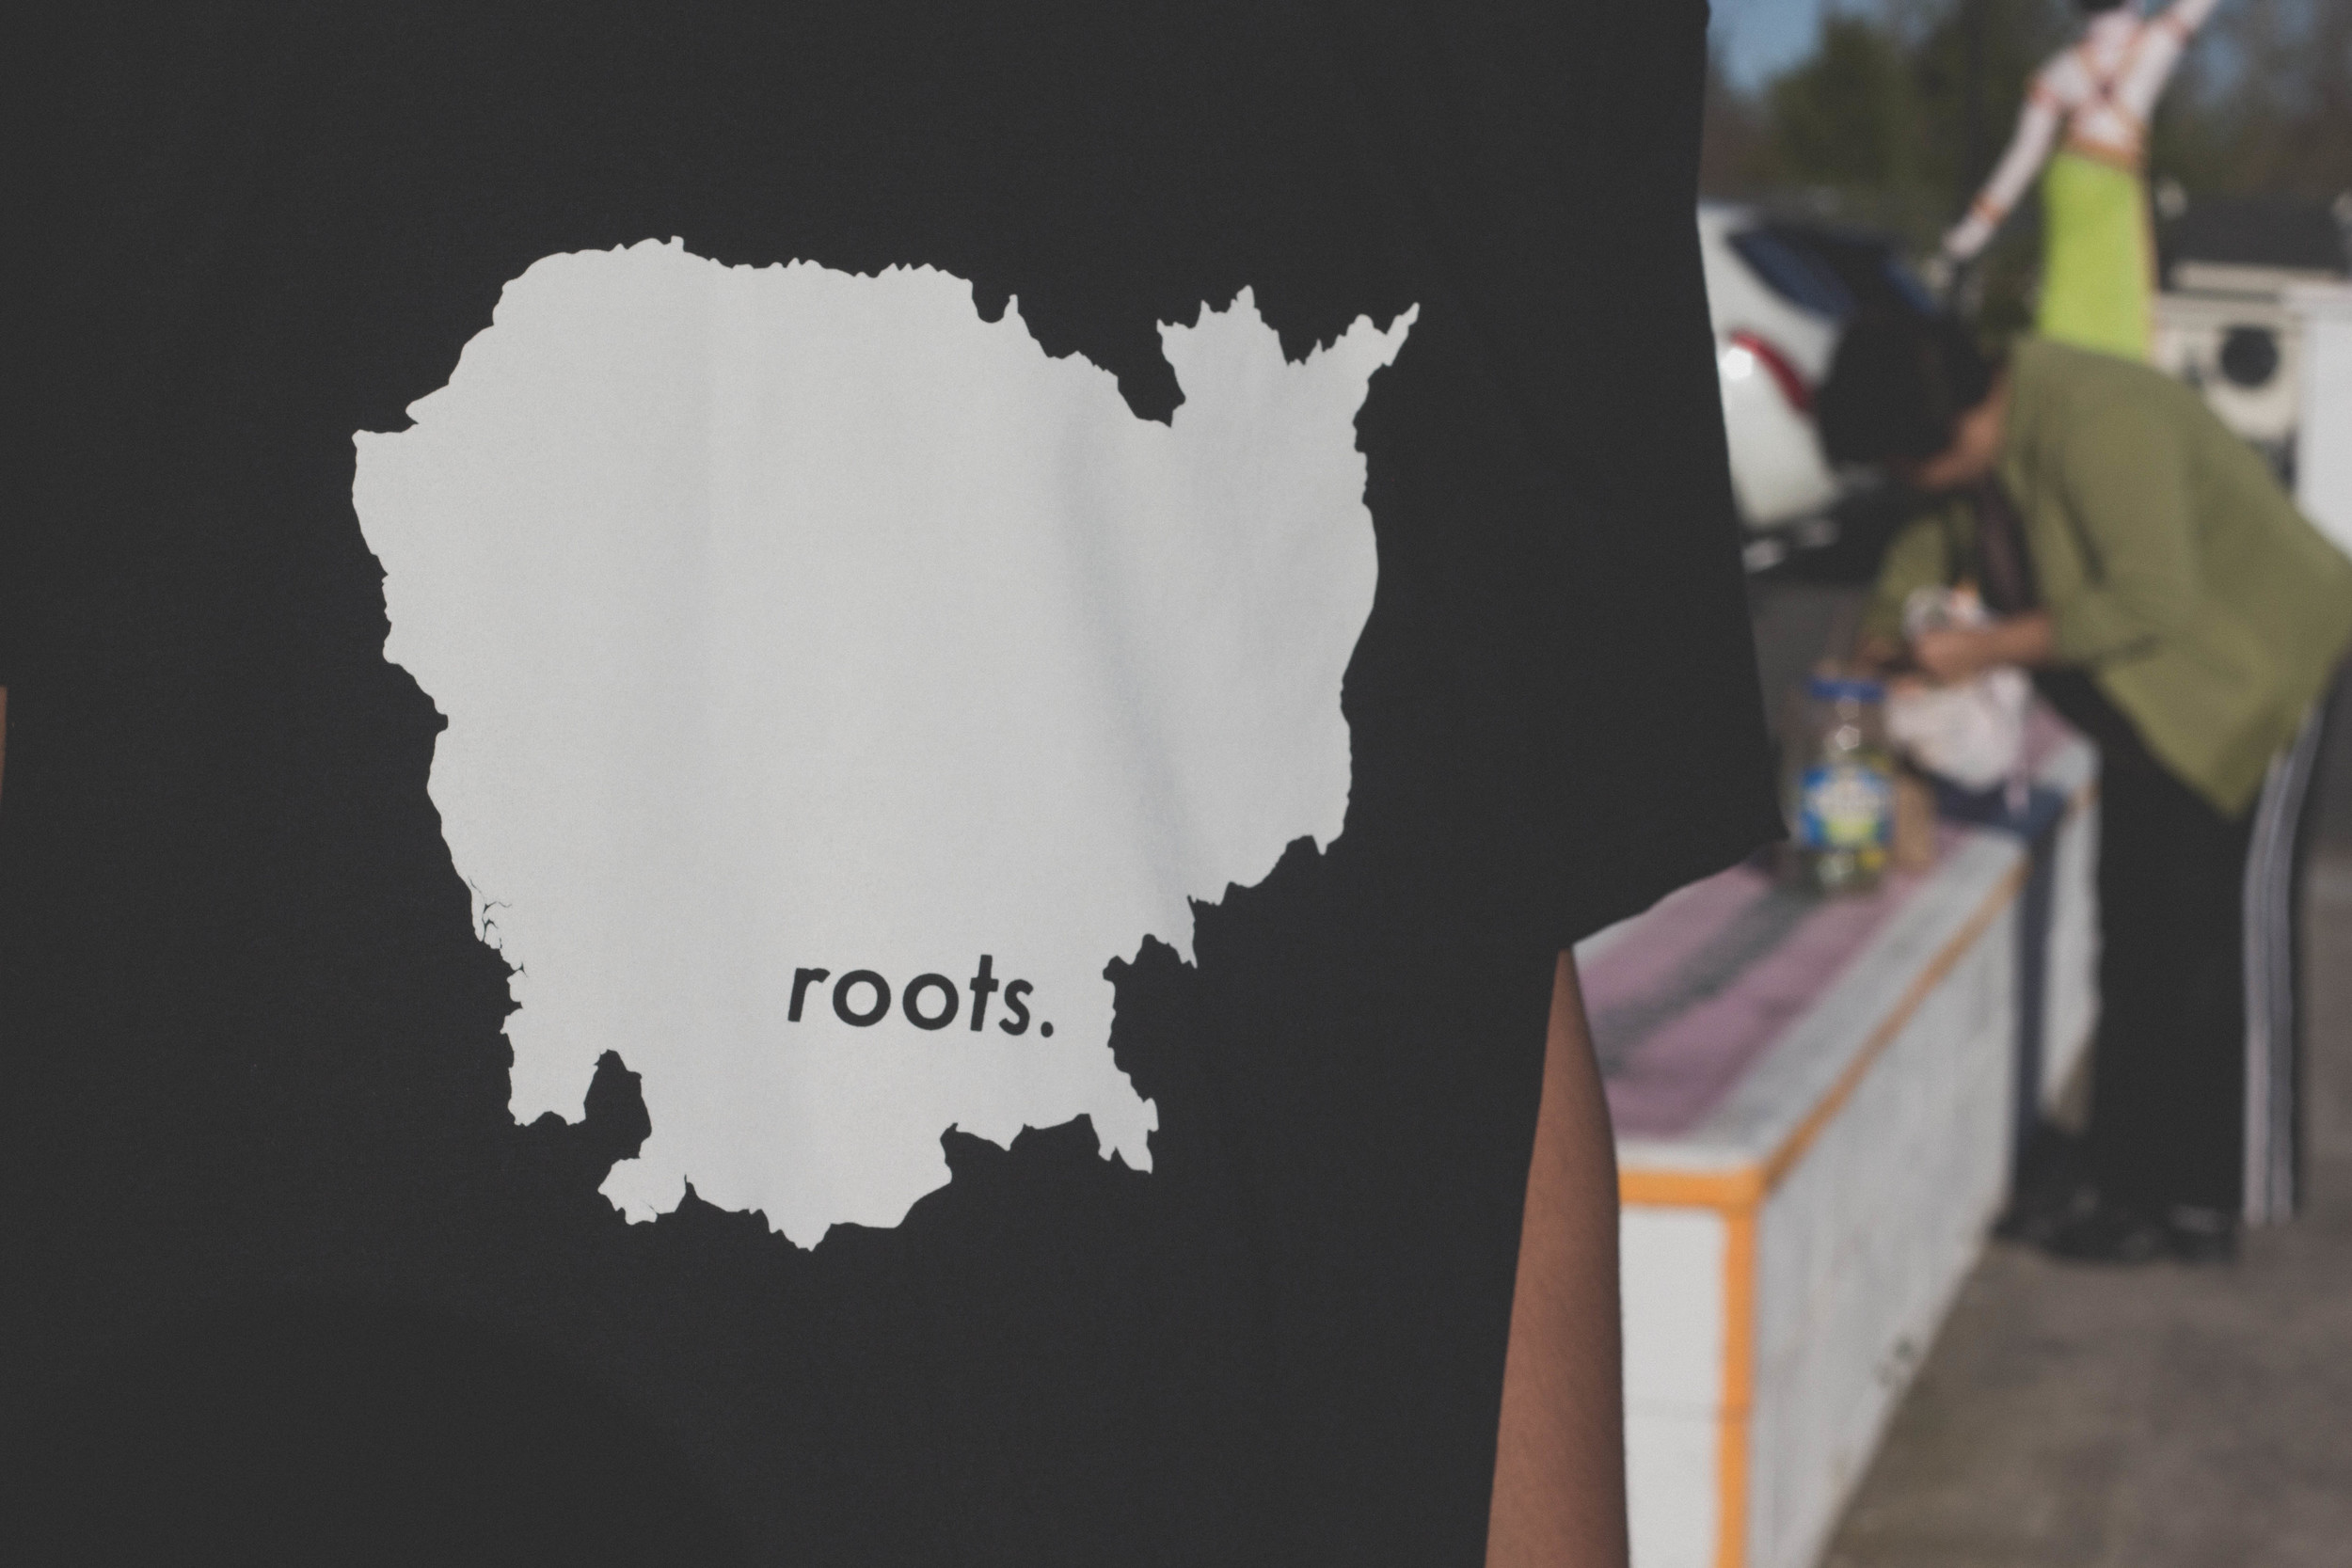 roots. by Red Scarf Revolution